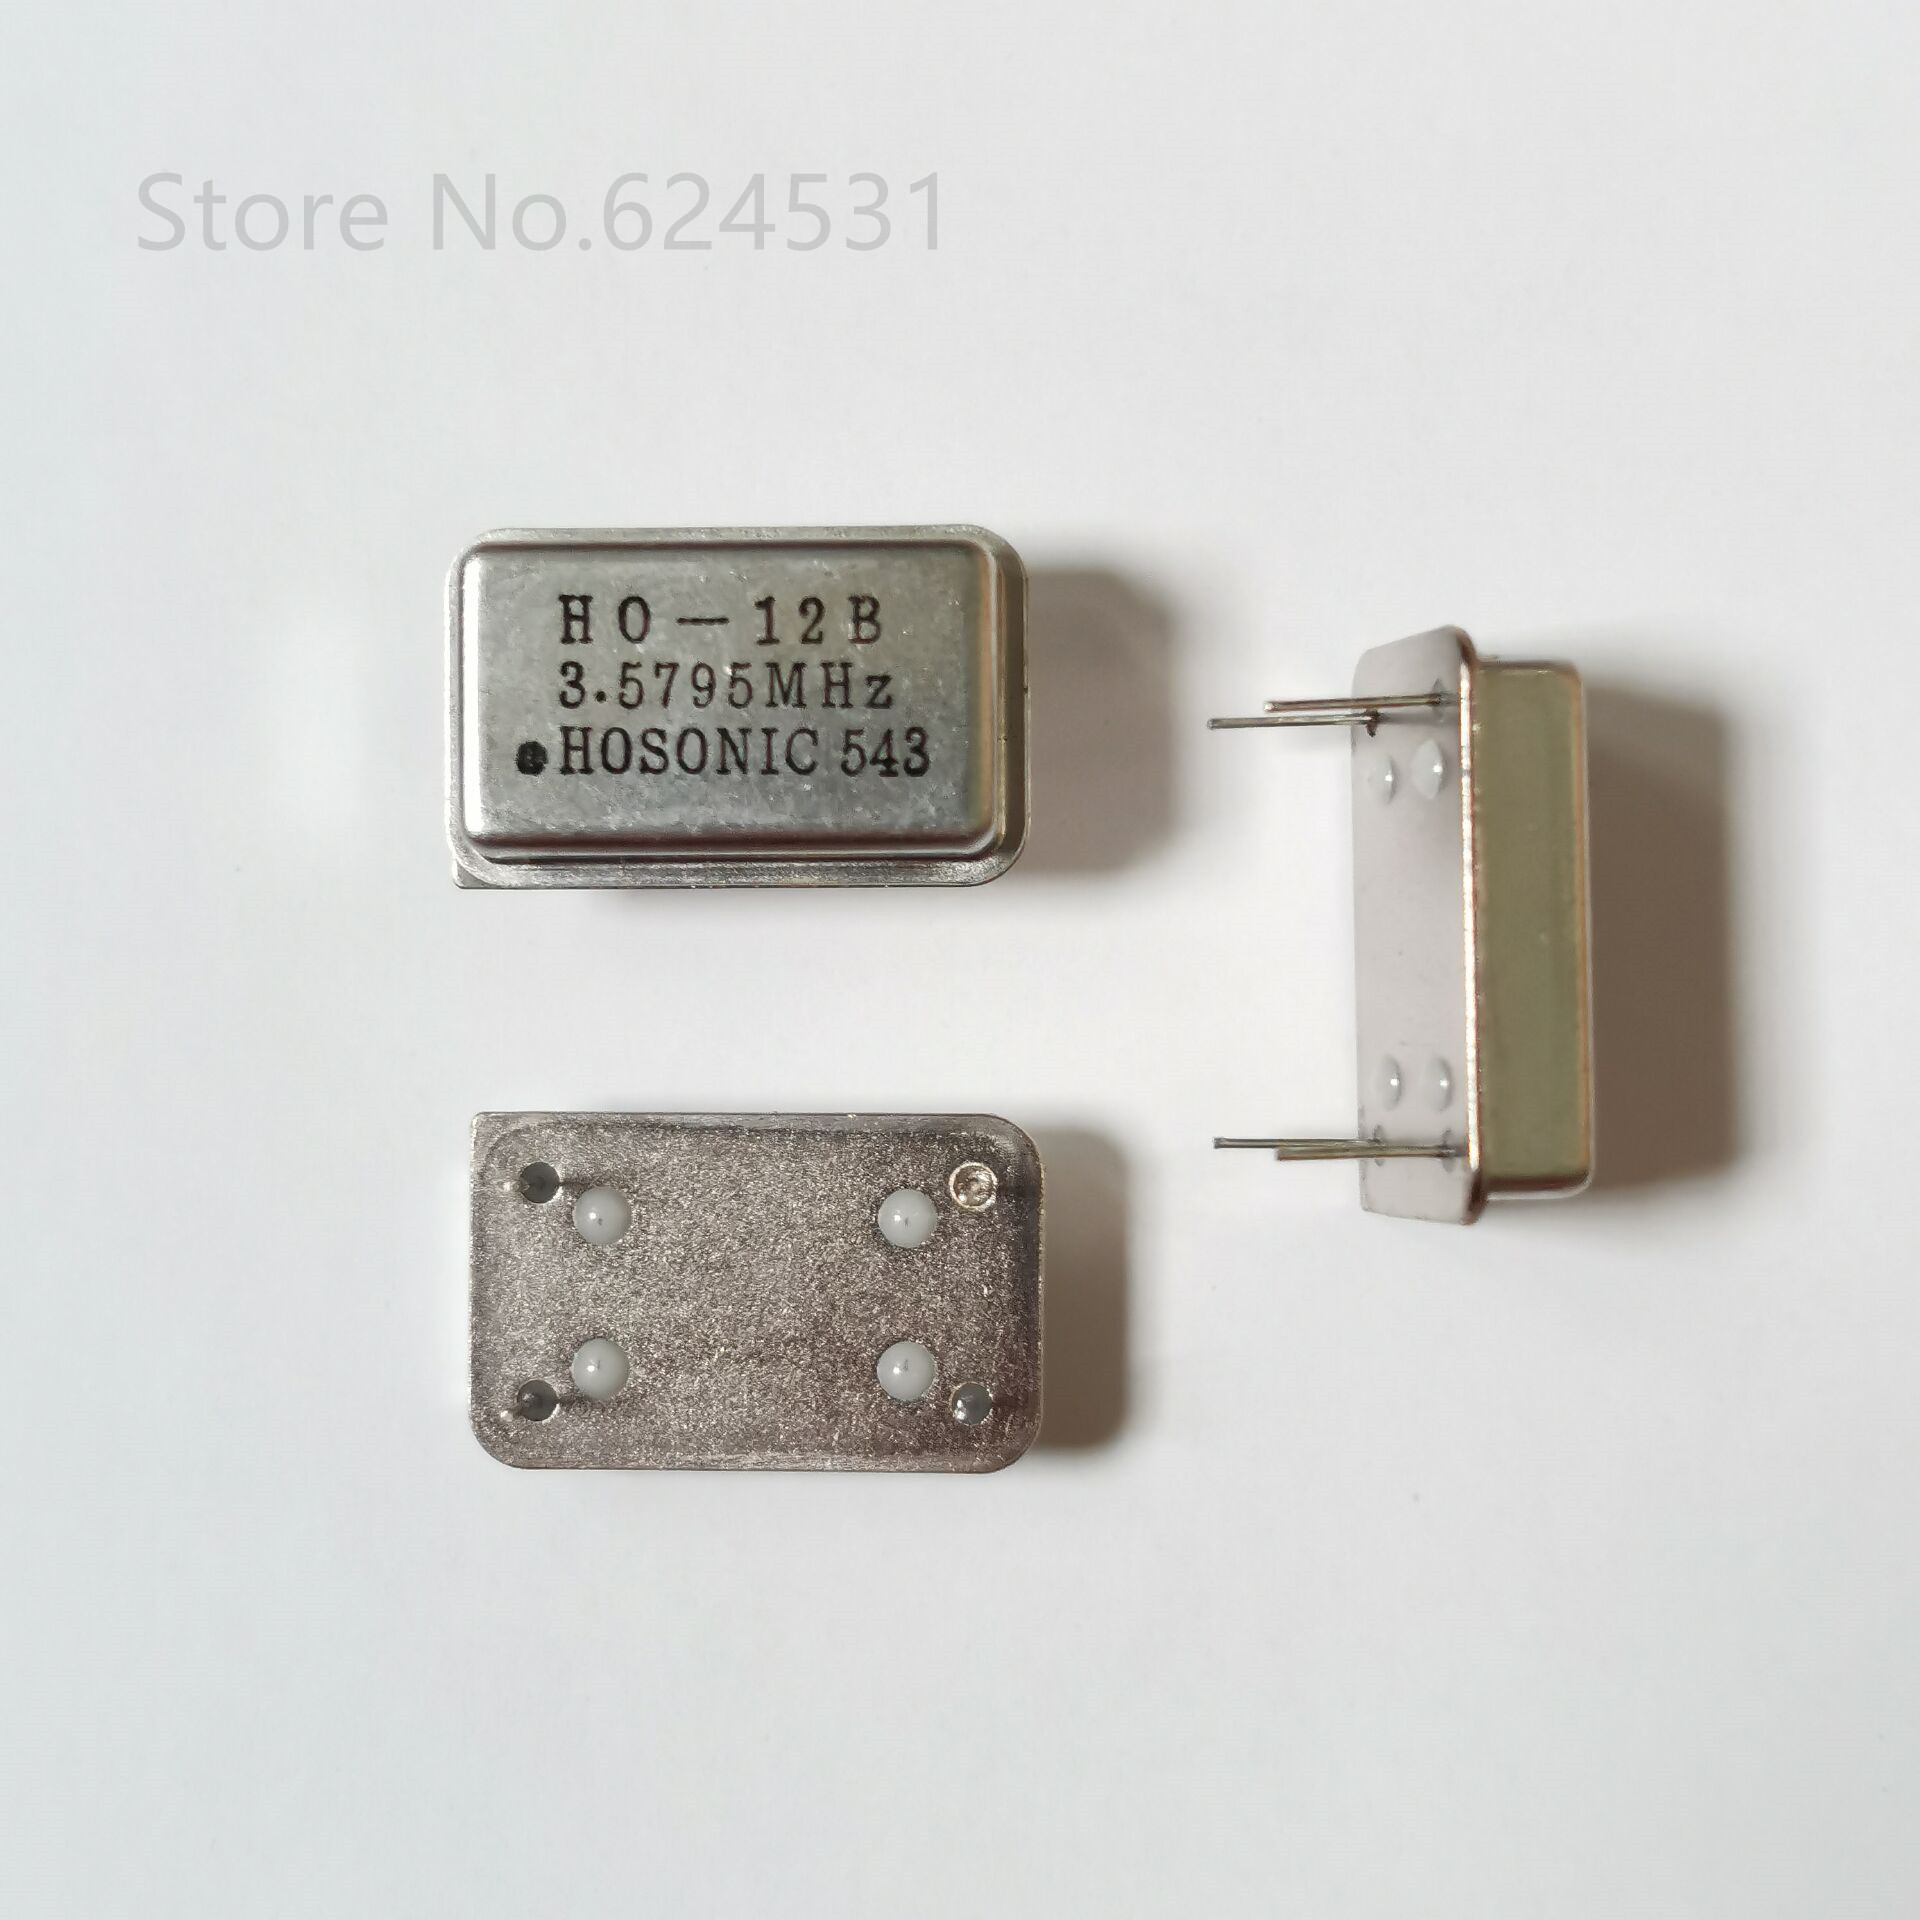 5pcs In-line Active Crystal OSC DIP-4 Rectangular Clock Vibration Full Size 3.579545MHZ 3.579MHZ